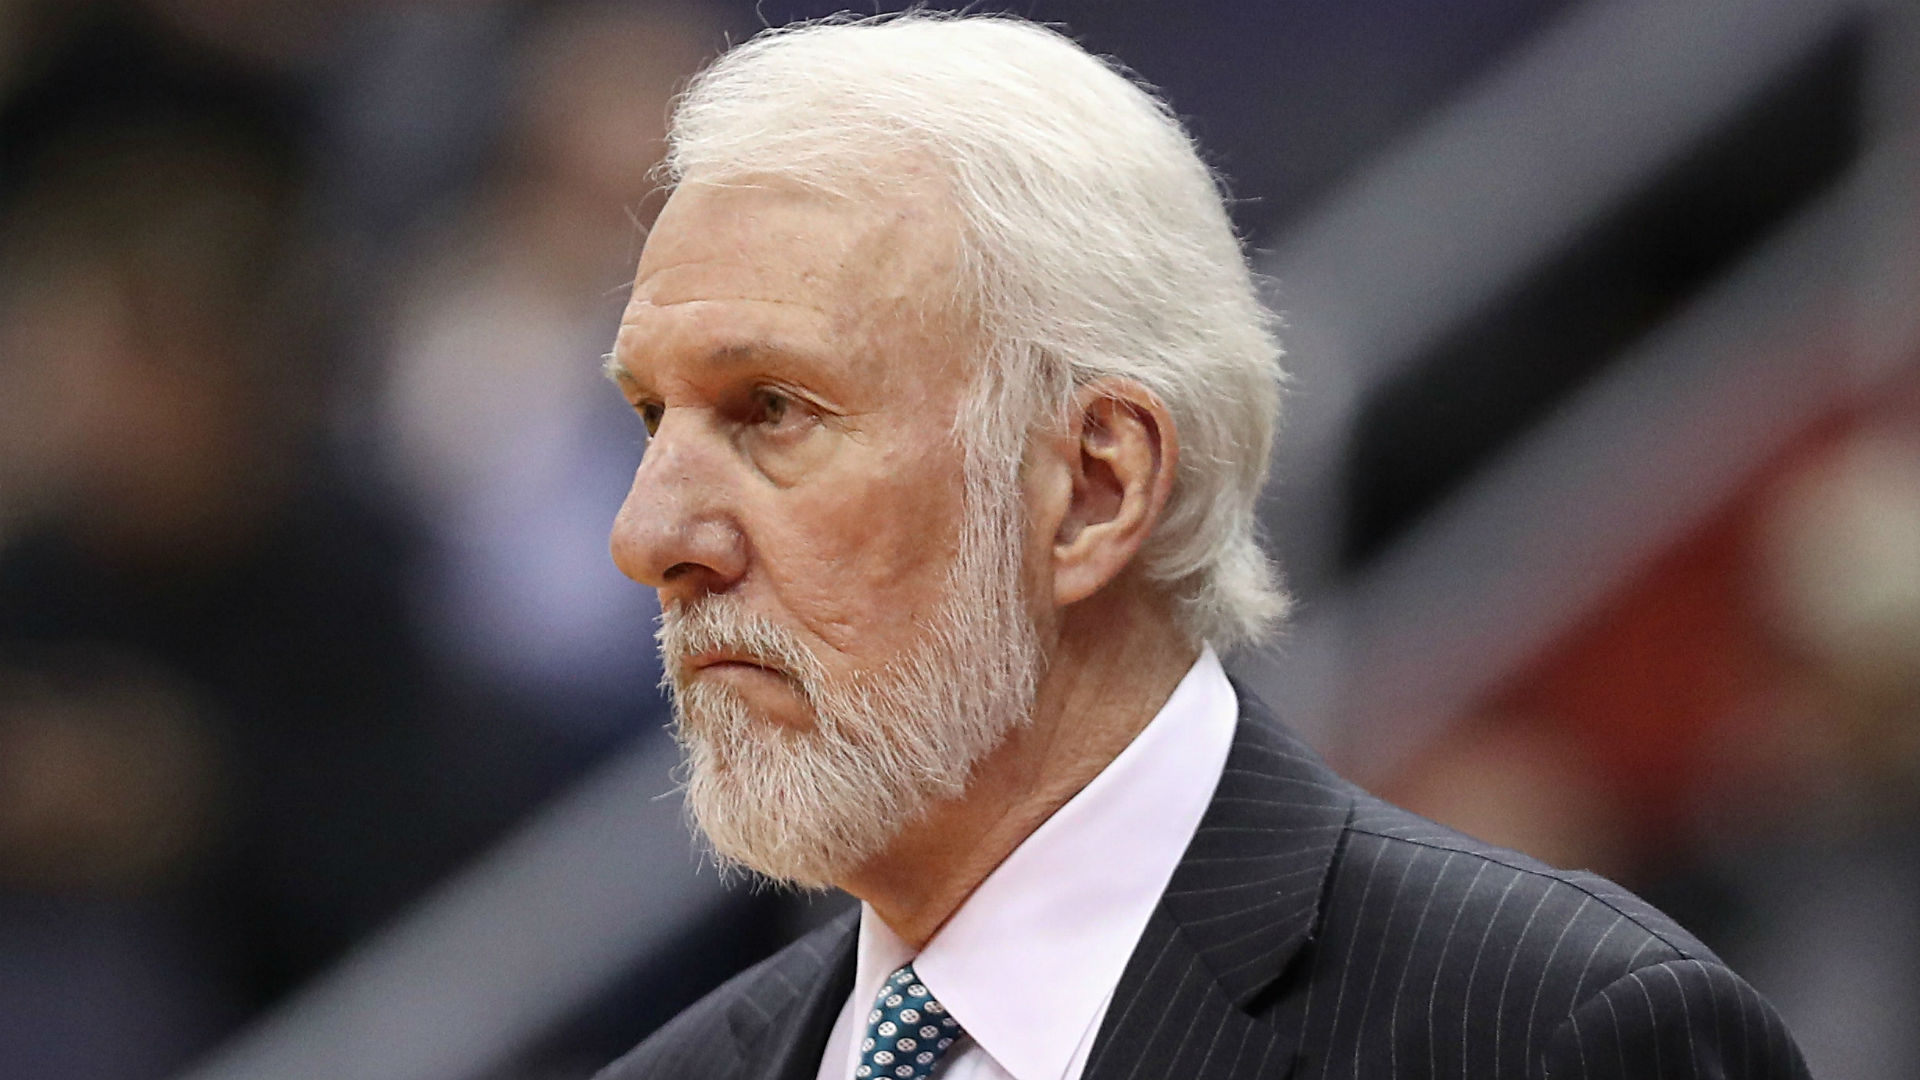 Spurs' Gregg Popovich gets wine question from Grant Hill during in-game interview